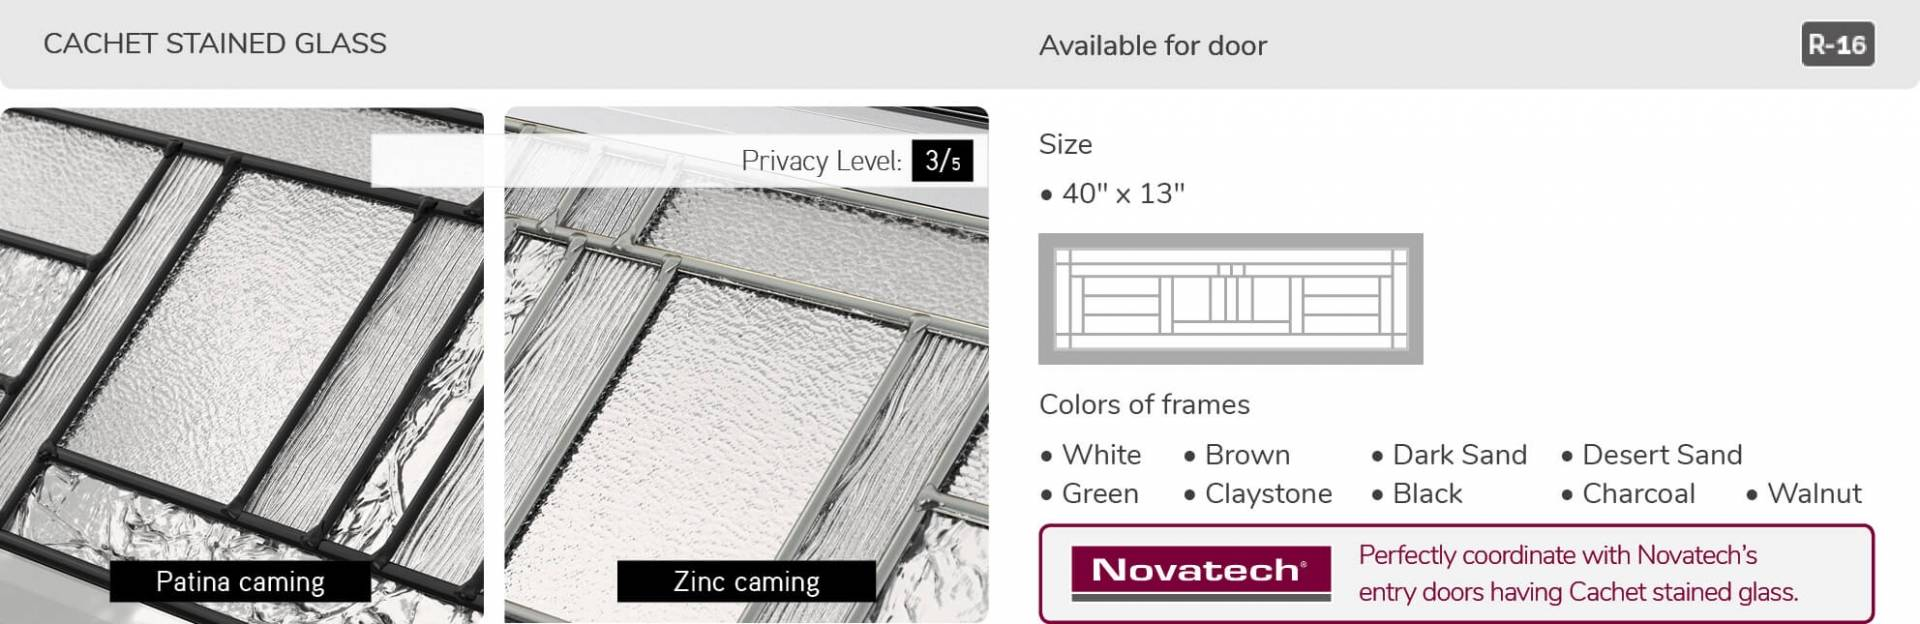 Cachet Stained glass, 21' x 13' and 40' x 13', available for door R-16